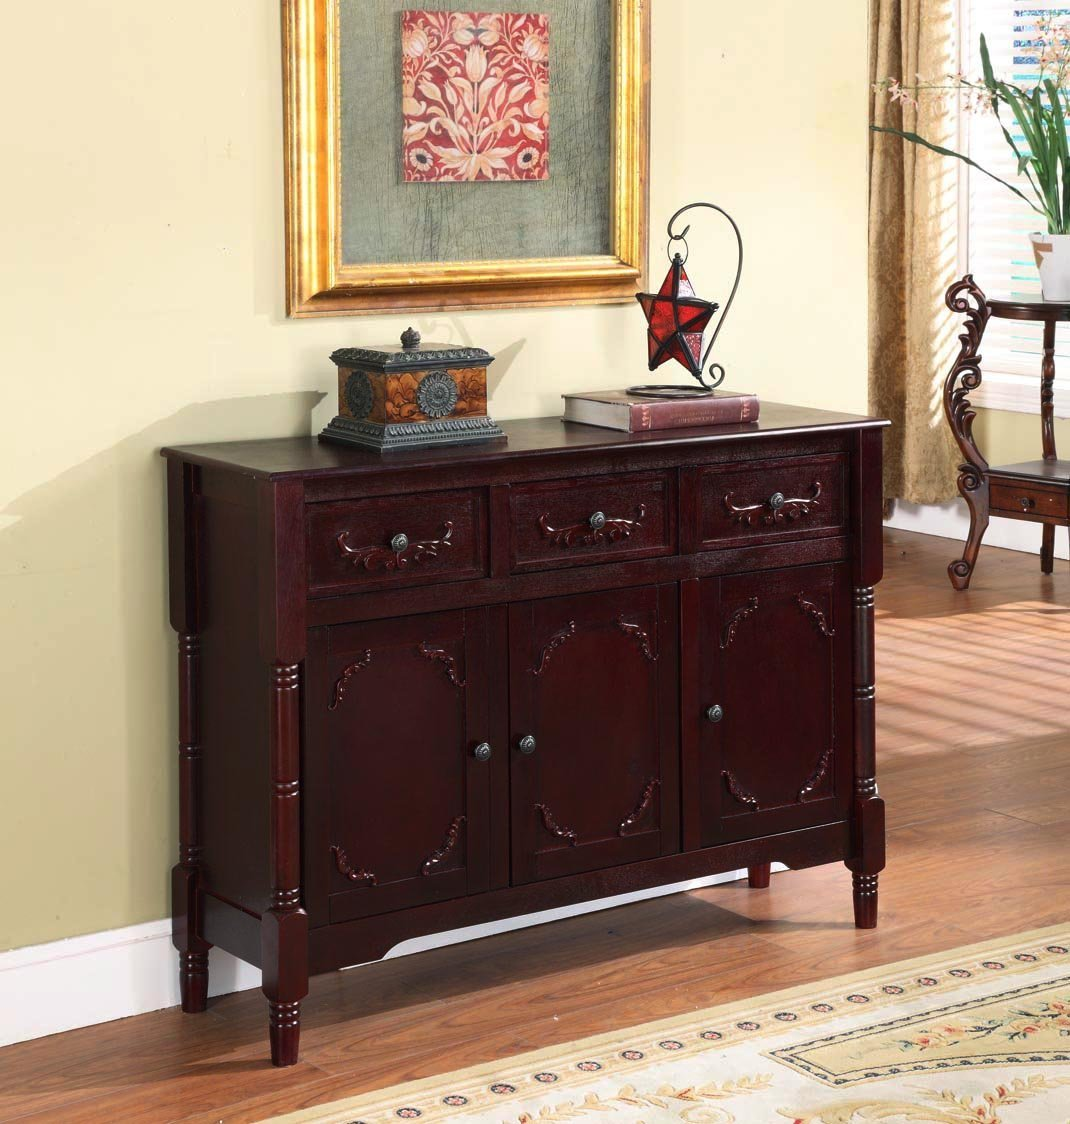 King's Brand R1021 Wood Console Sideboard Table with Drawers and Storage - Cherry Finish